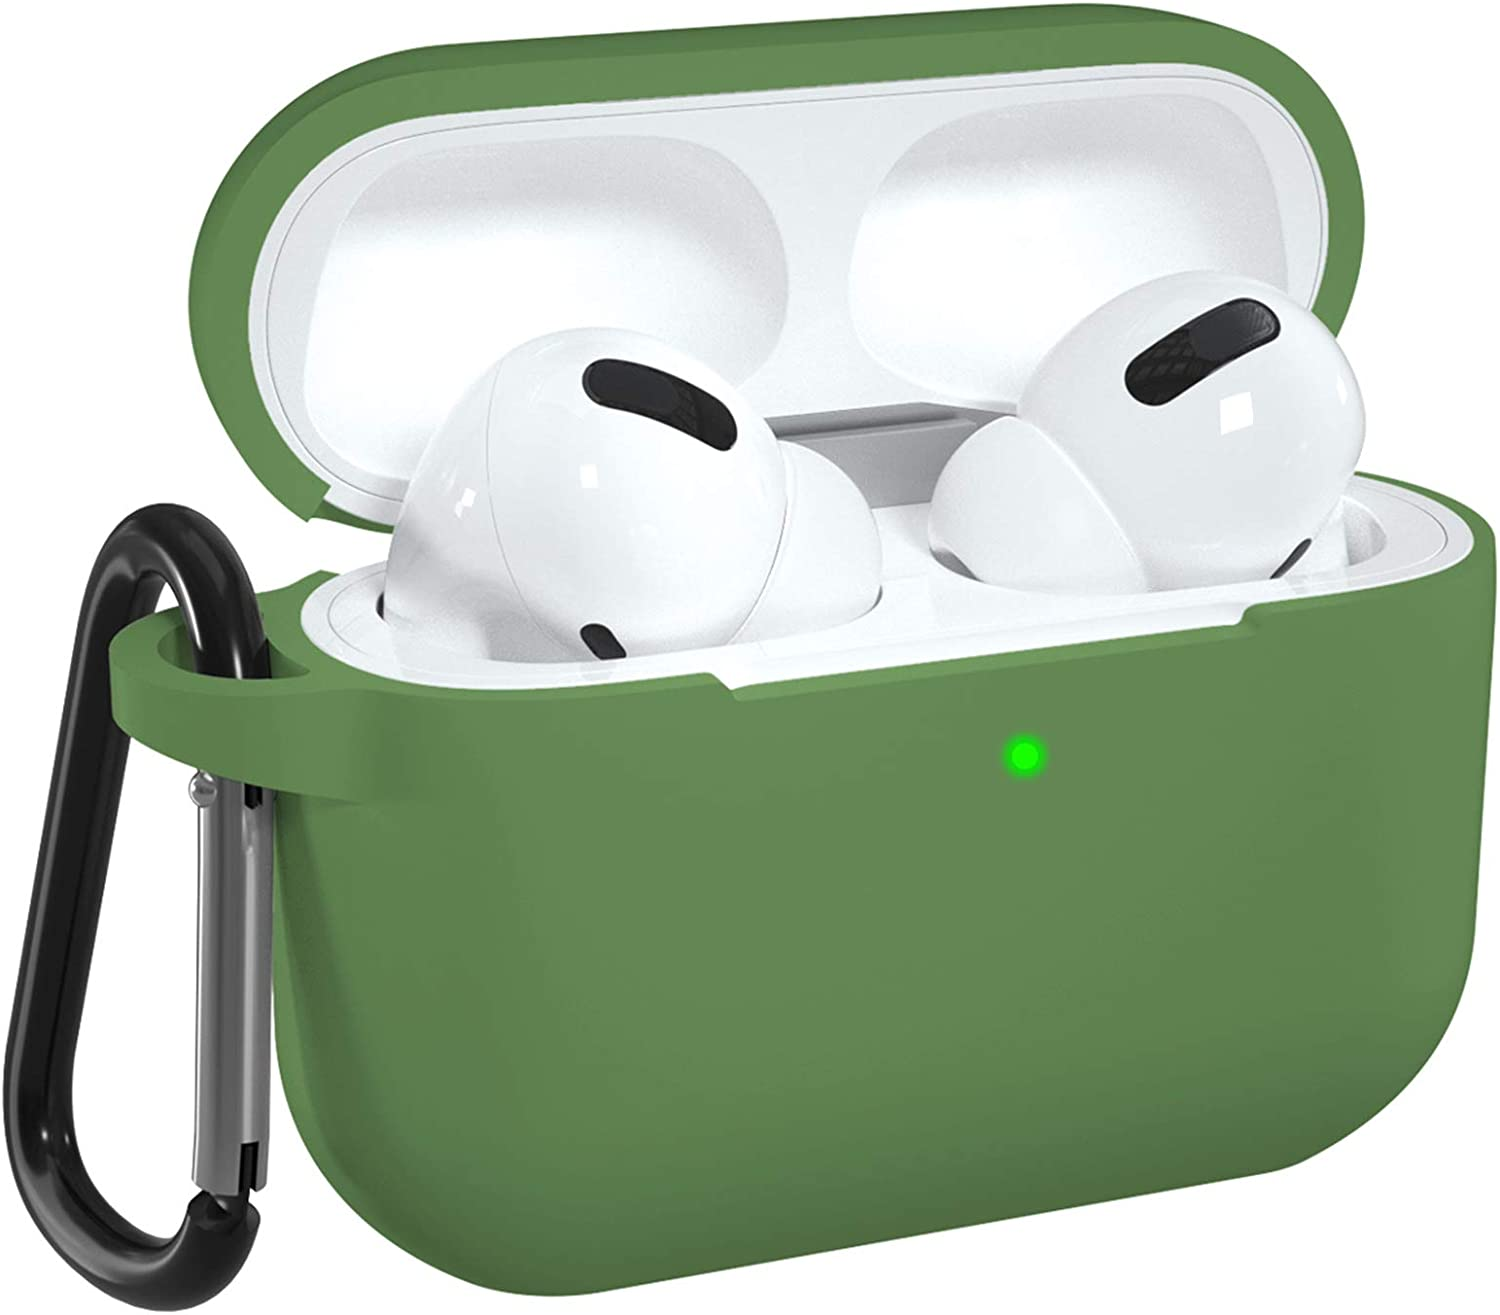 DGege Silicone Case Cover Compatible with Apple AirPods Pro, Protective Case with Carabiner for Airpods 3 (Front LED Visible), Olive Green